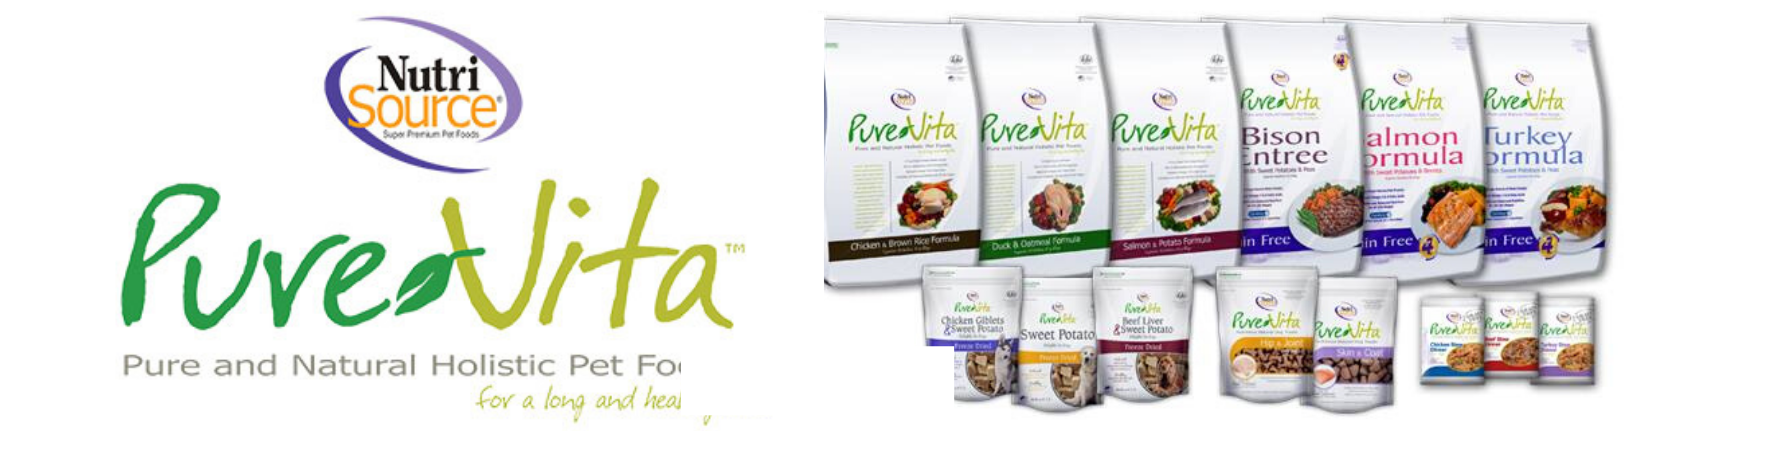 Pure Vita Dog and Cat Food Made in the USA Pure Natural Holistic Pet Food